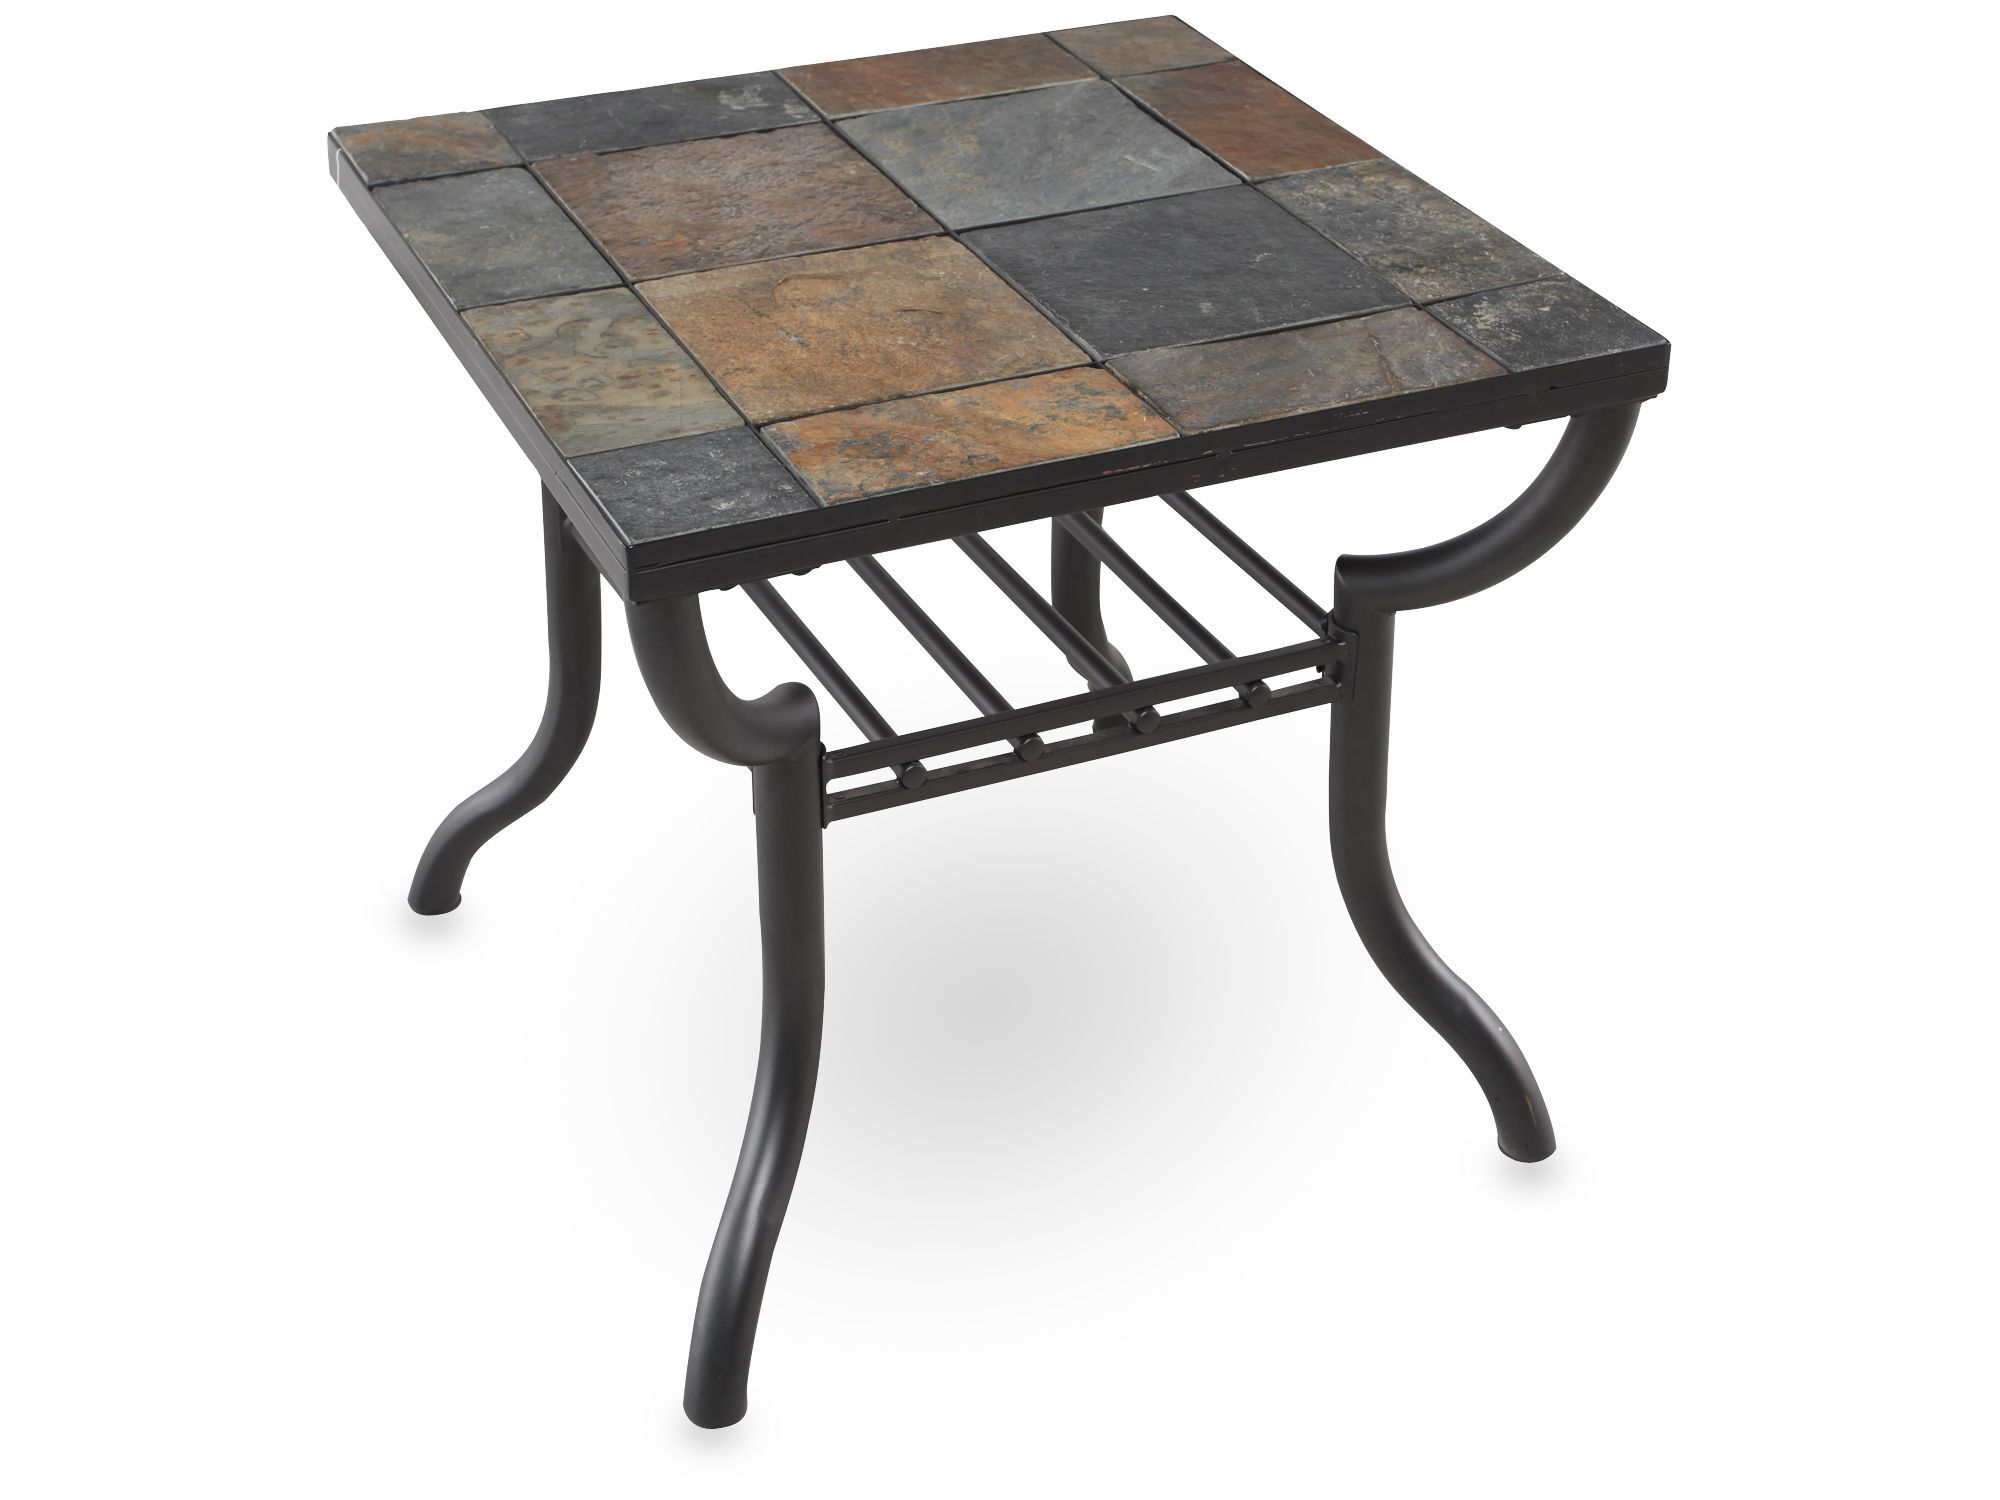 Square Slate Tiled Contemporary End Tableu0026nbsp;in Gunmetal